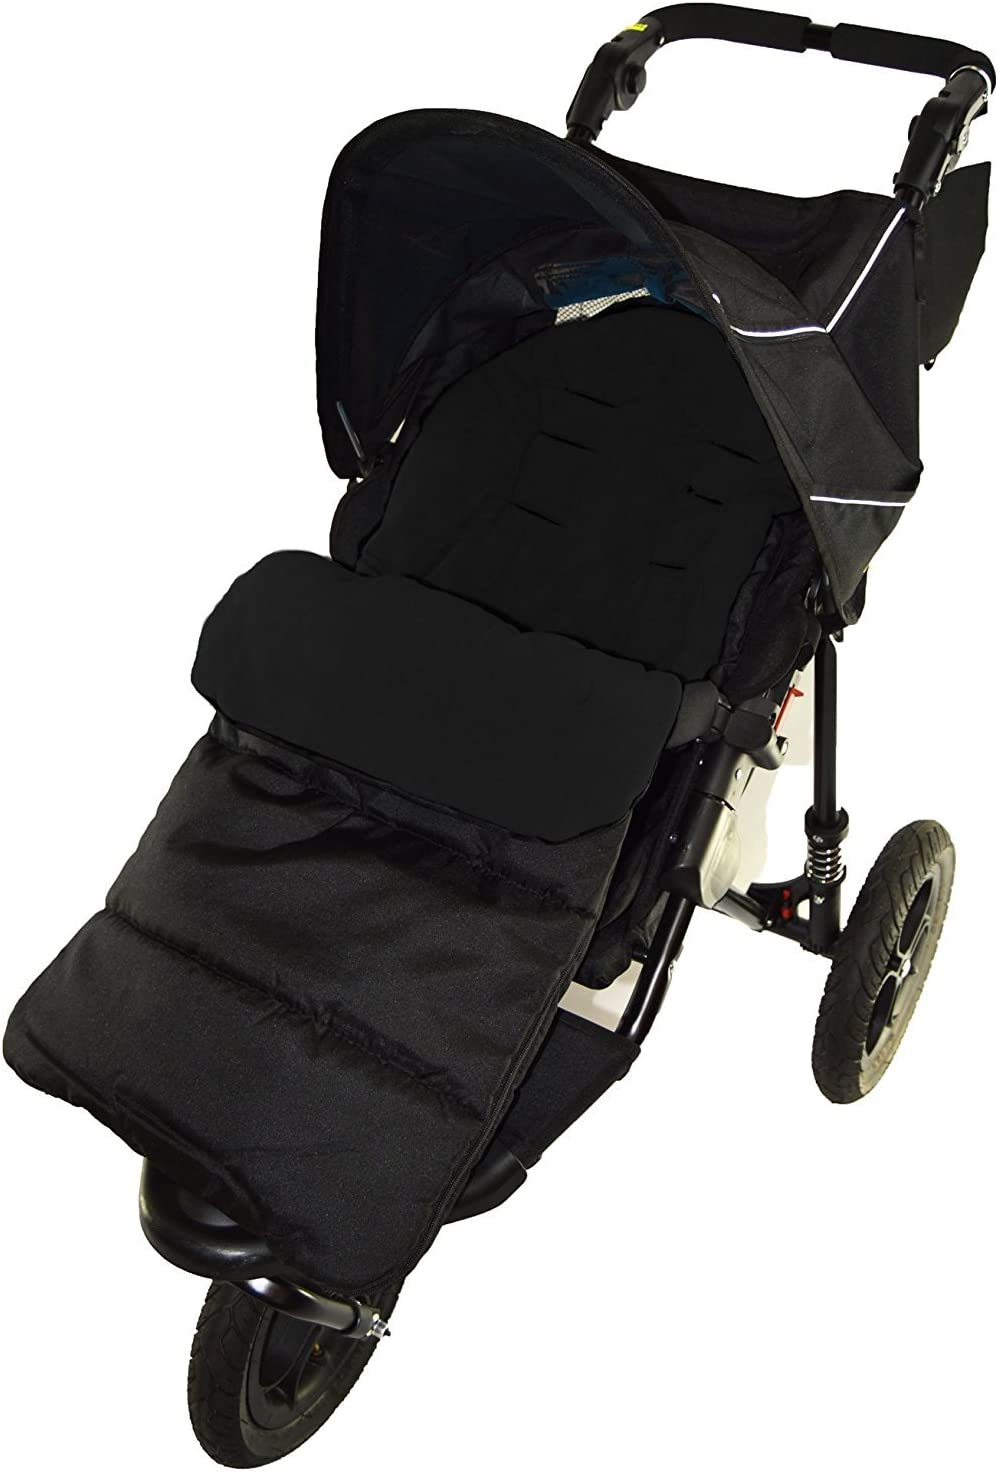 Footmuff//Cosy Toes Compatible with Phil /& Teds Dot Pushchair Black Jack